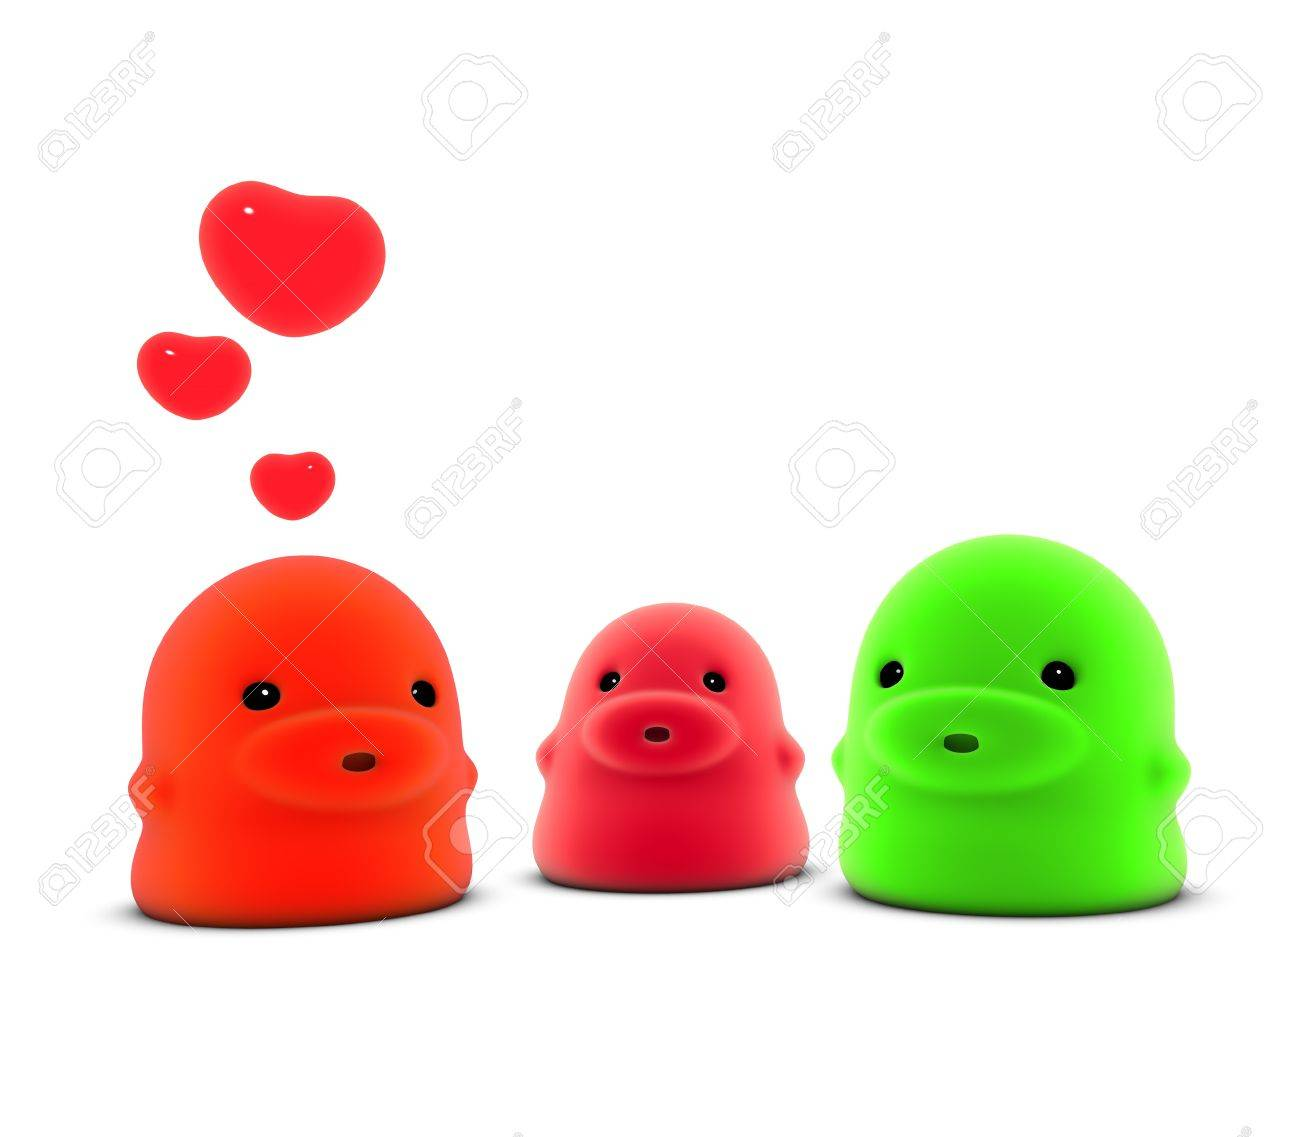 3d render of 3 little monster creature in love over white Stock Photo - 10798607